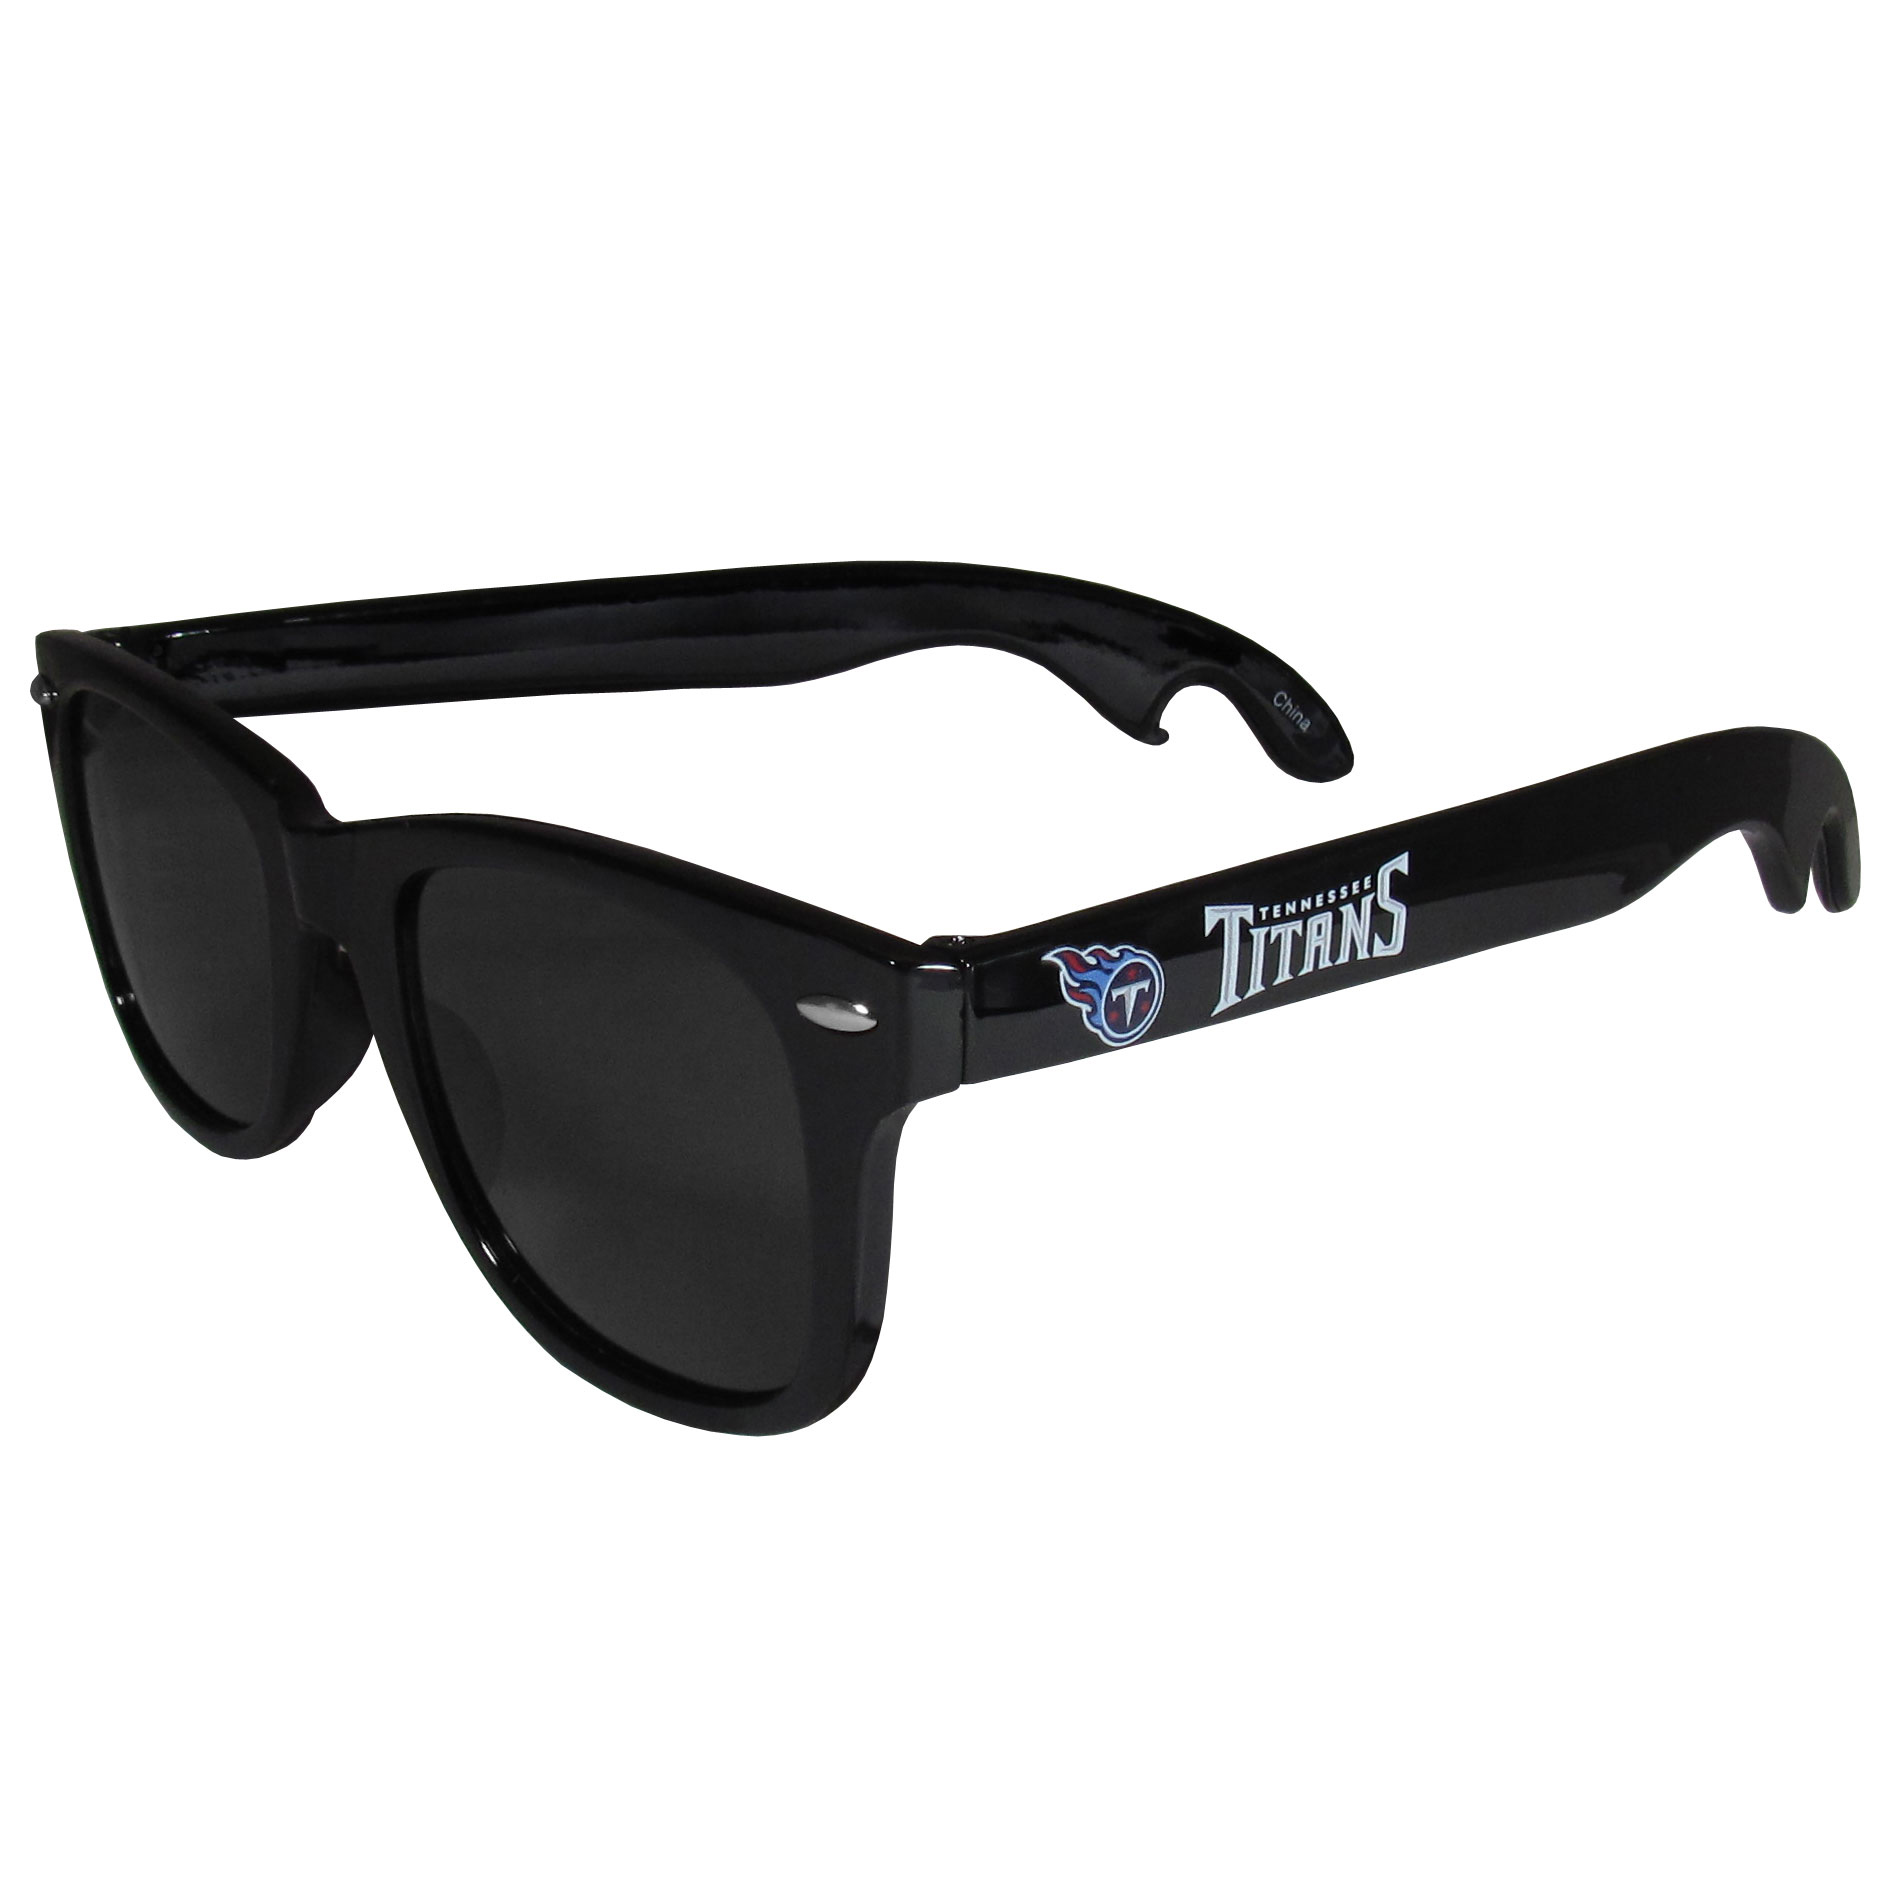 Tennessee Titans Beachfarer Bottle Opener Sunglasses - Seriously, these sunglasses open bottles! Keep the party going with these amazing Tennessee Titans bottle opener sunglasses. The stylish retro frames feature team designs on the arms and functional bottle openers on the end of the arms. Whether you are at the beach or having a backyard BBQ on game day, these shades will keep your eyes protected with 100% UVA/UVB protection and keep you hydrated with the handy bottle opener arms.